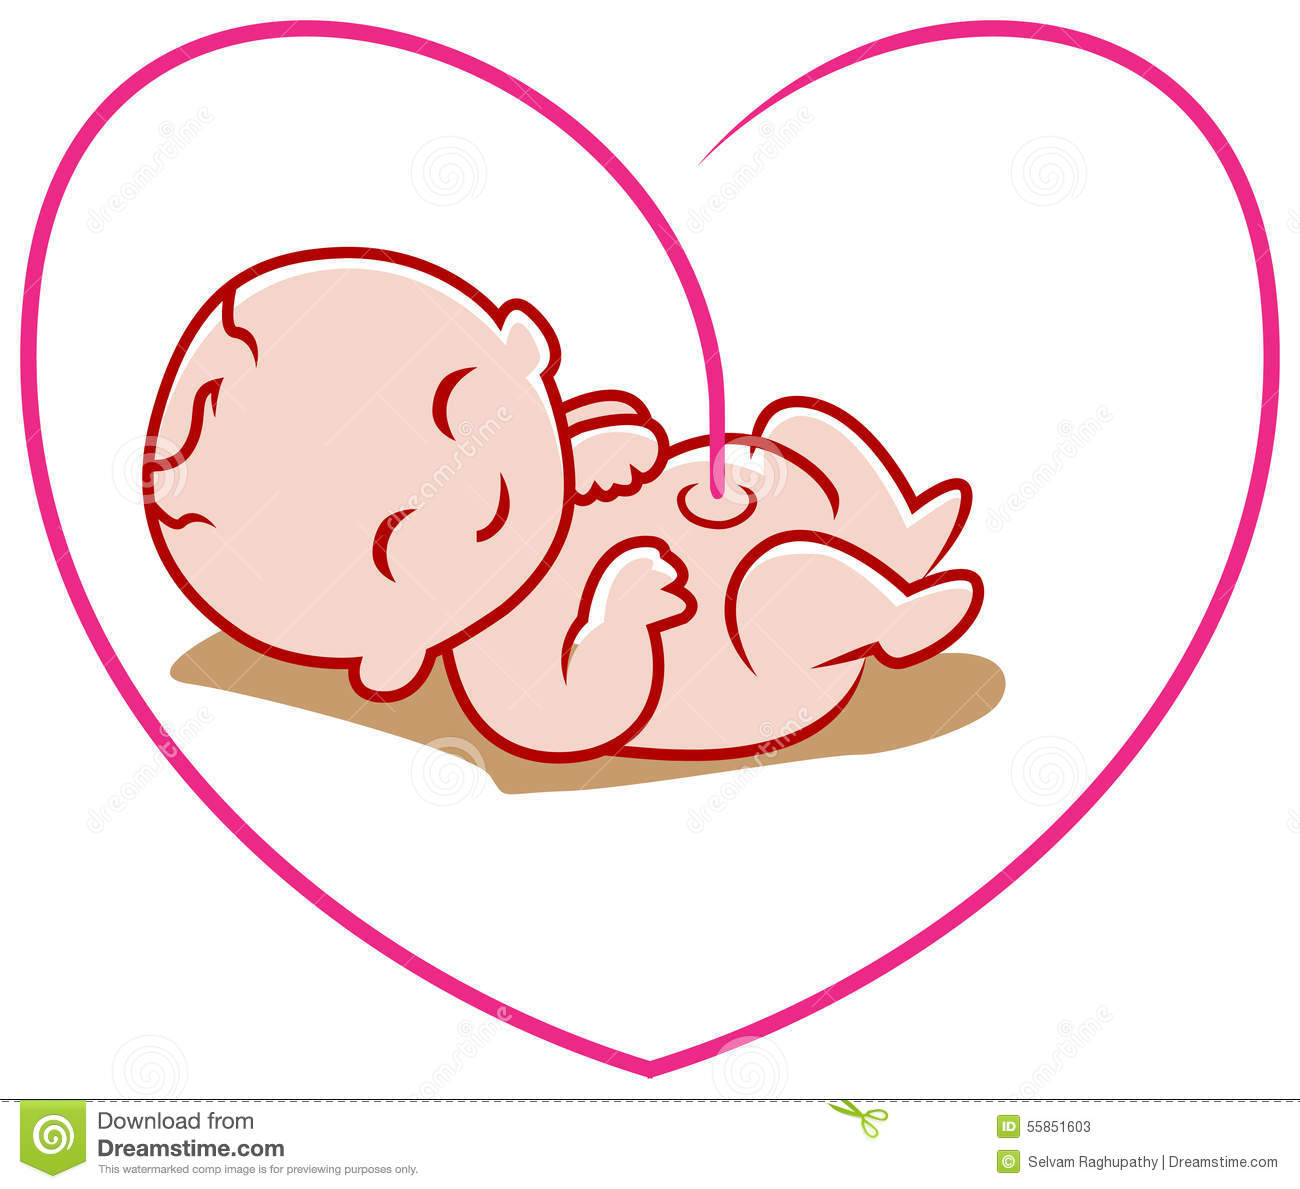 Birth clipart clipart royalty free download Birth Clip Art | Clipart Panda - Free Clipart Images clipart royalty free download